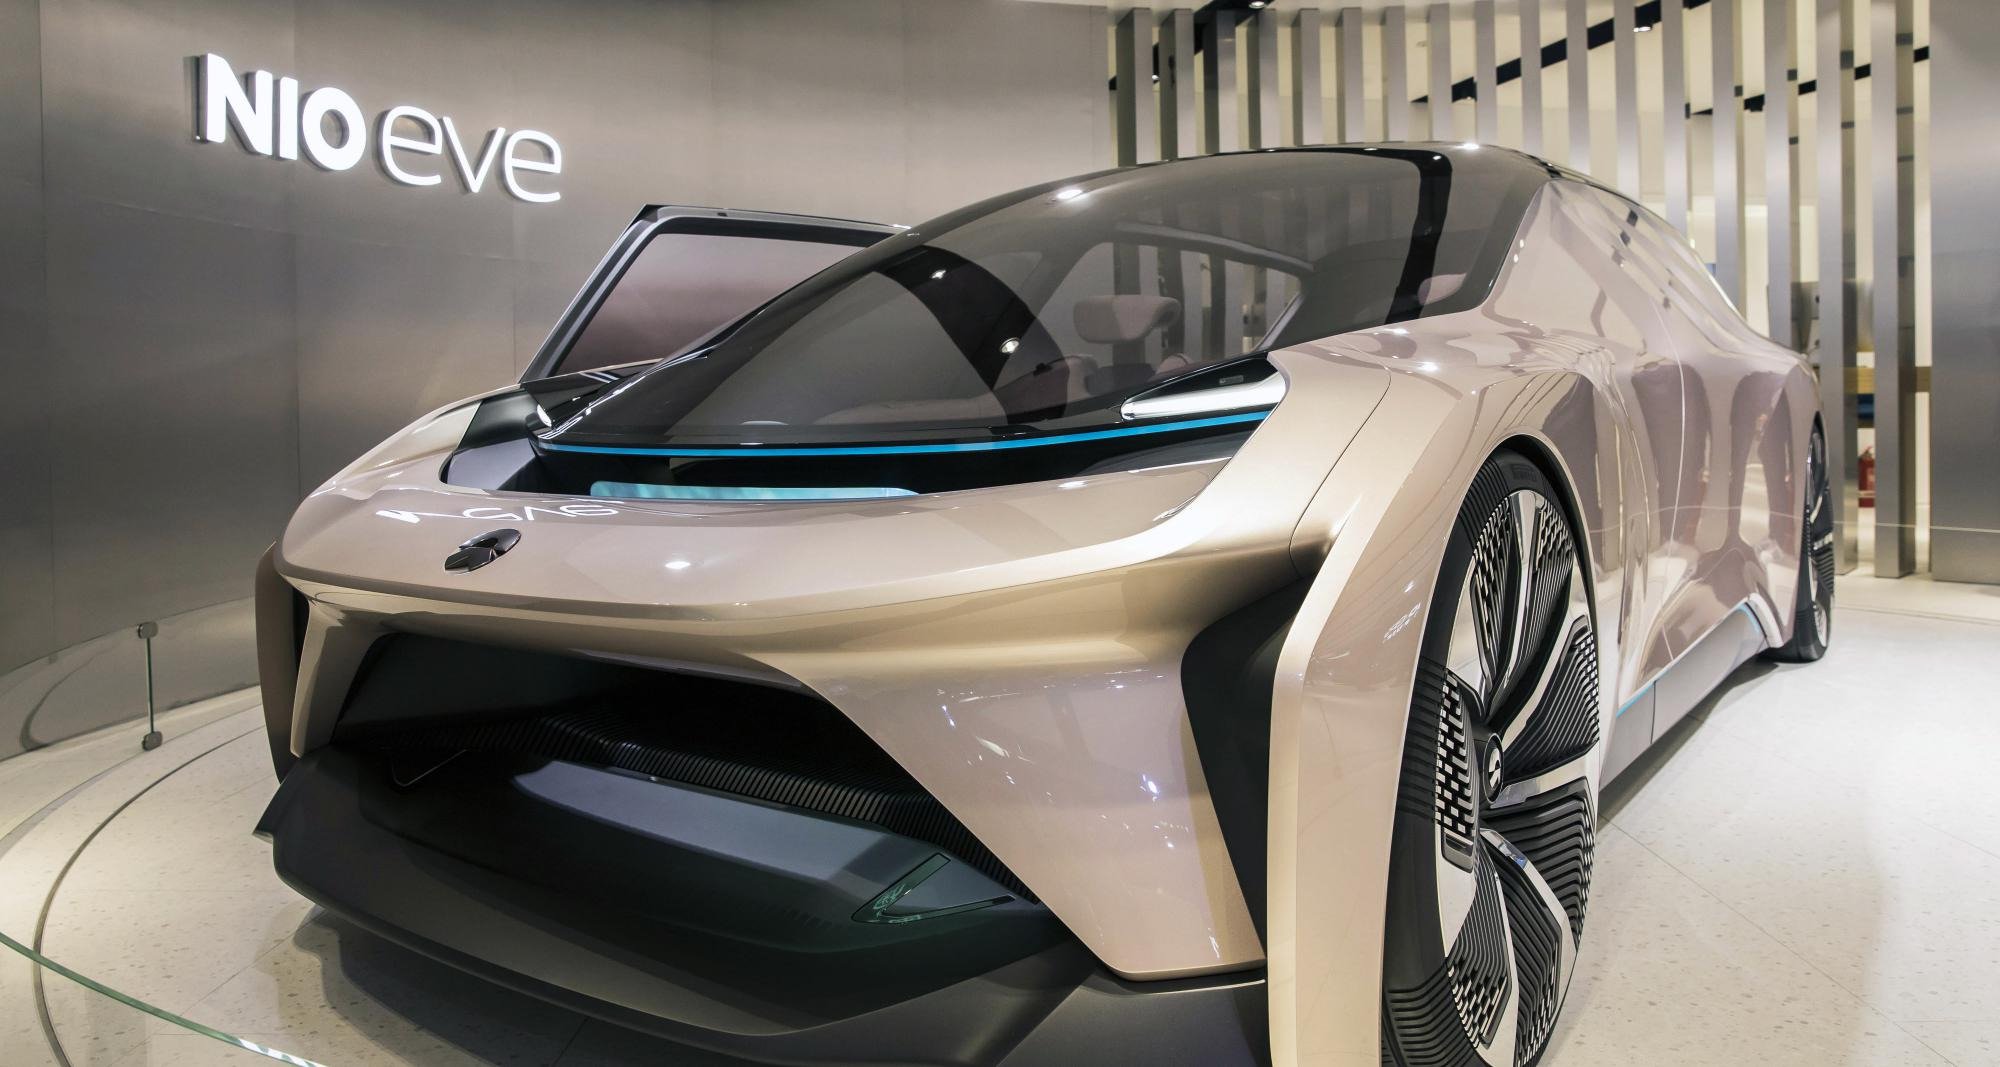 Rough And Tough Electric Vehicles Not Lossing Wiring Diagram Ruff Tuff Golf Cart Chinese Vehicle Maker Nio Makes Bumpy Start Following 1b Rh Techcrunch Com